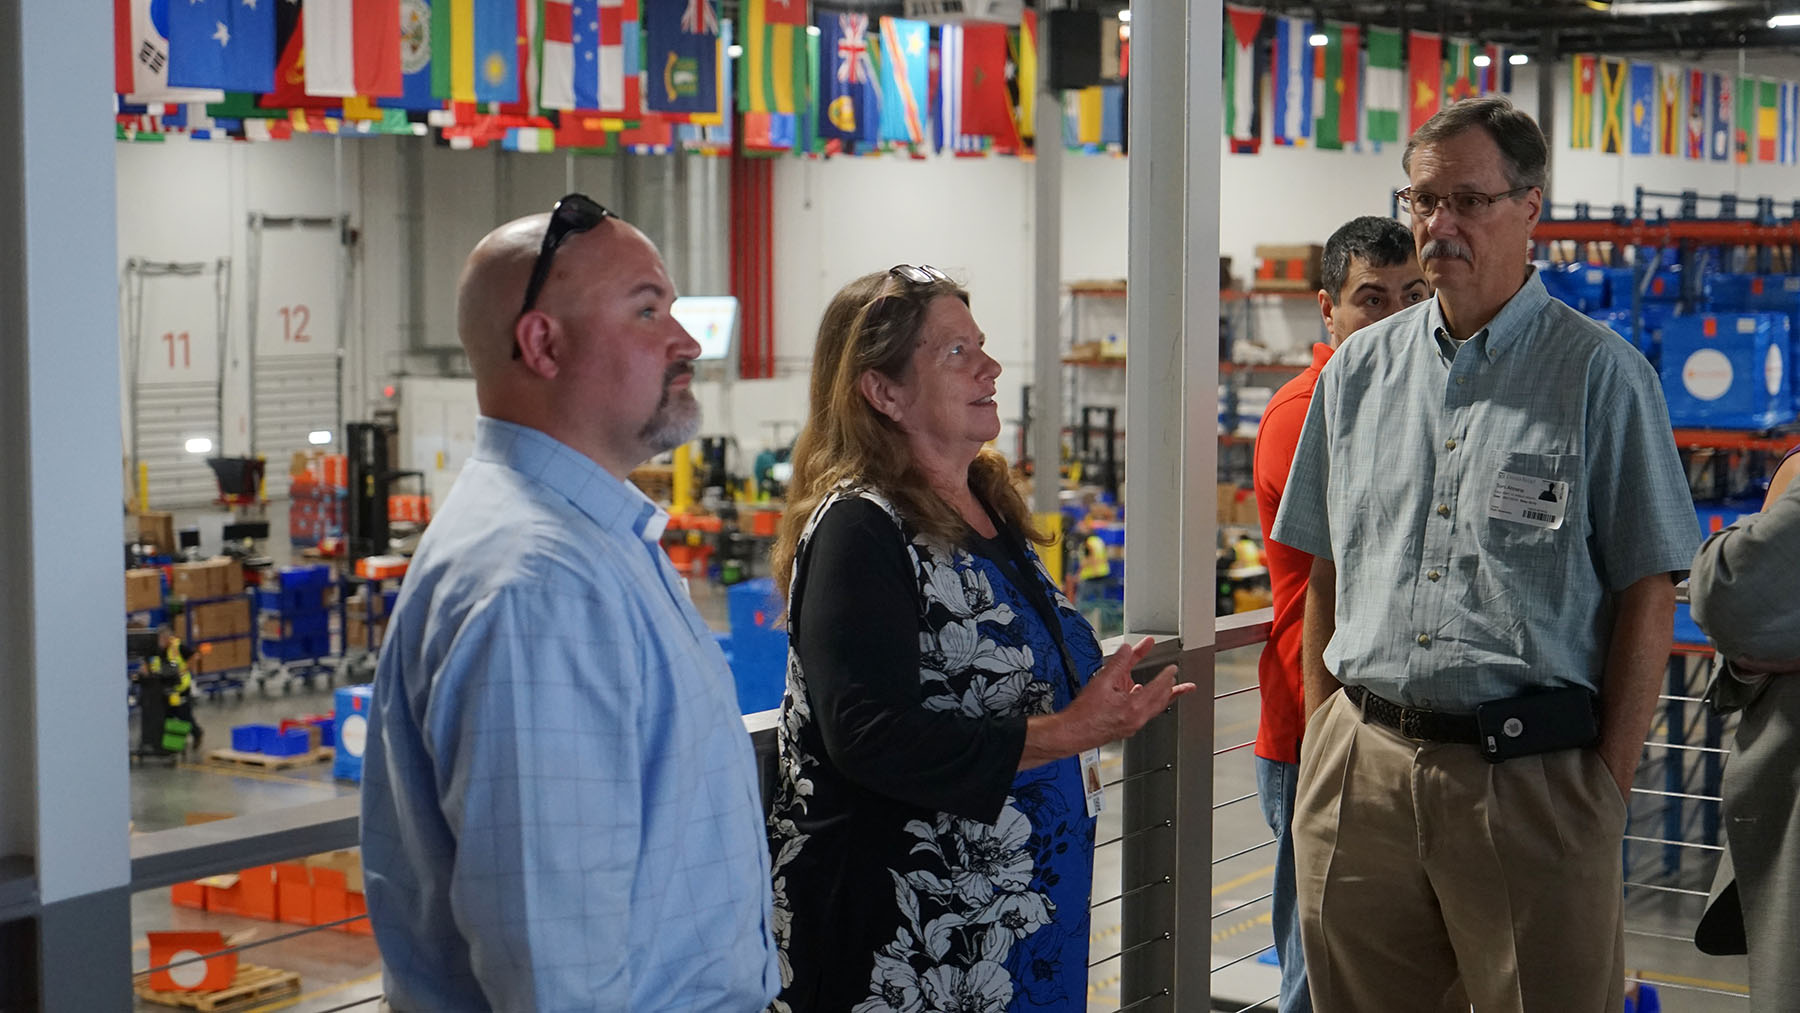 Direct Relief Pharmacist Ruth Smarinsky briefs state officials in Direct Relief's warehouse Wednesday. (Tony Morain/Direct Relief)